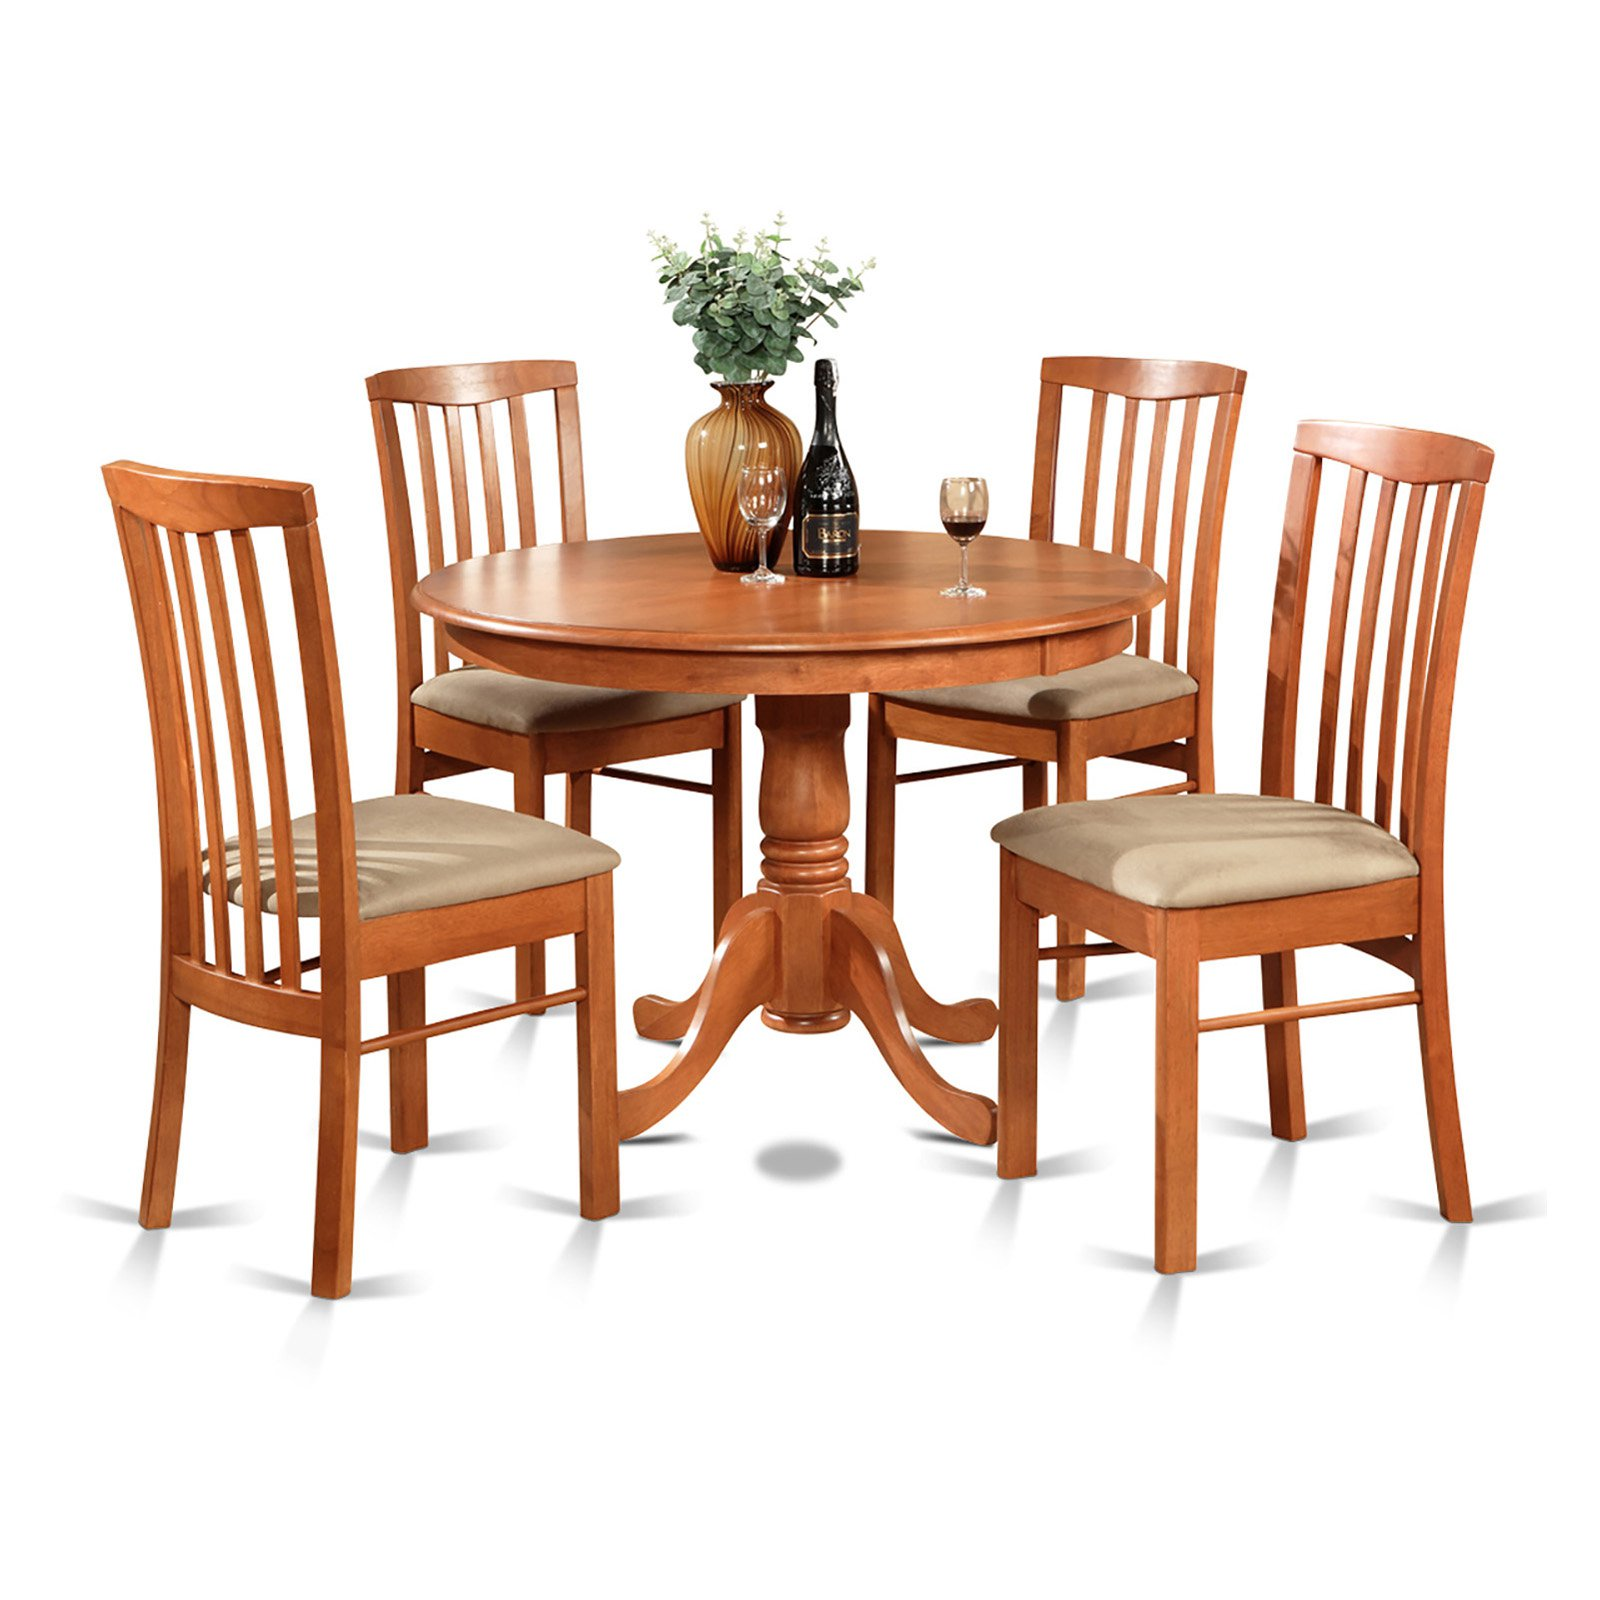 East West Furniture Hartland 5 Piece Round Pedestal Dining Table